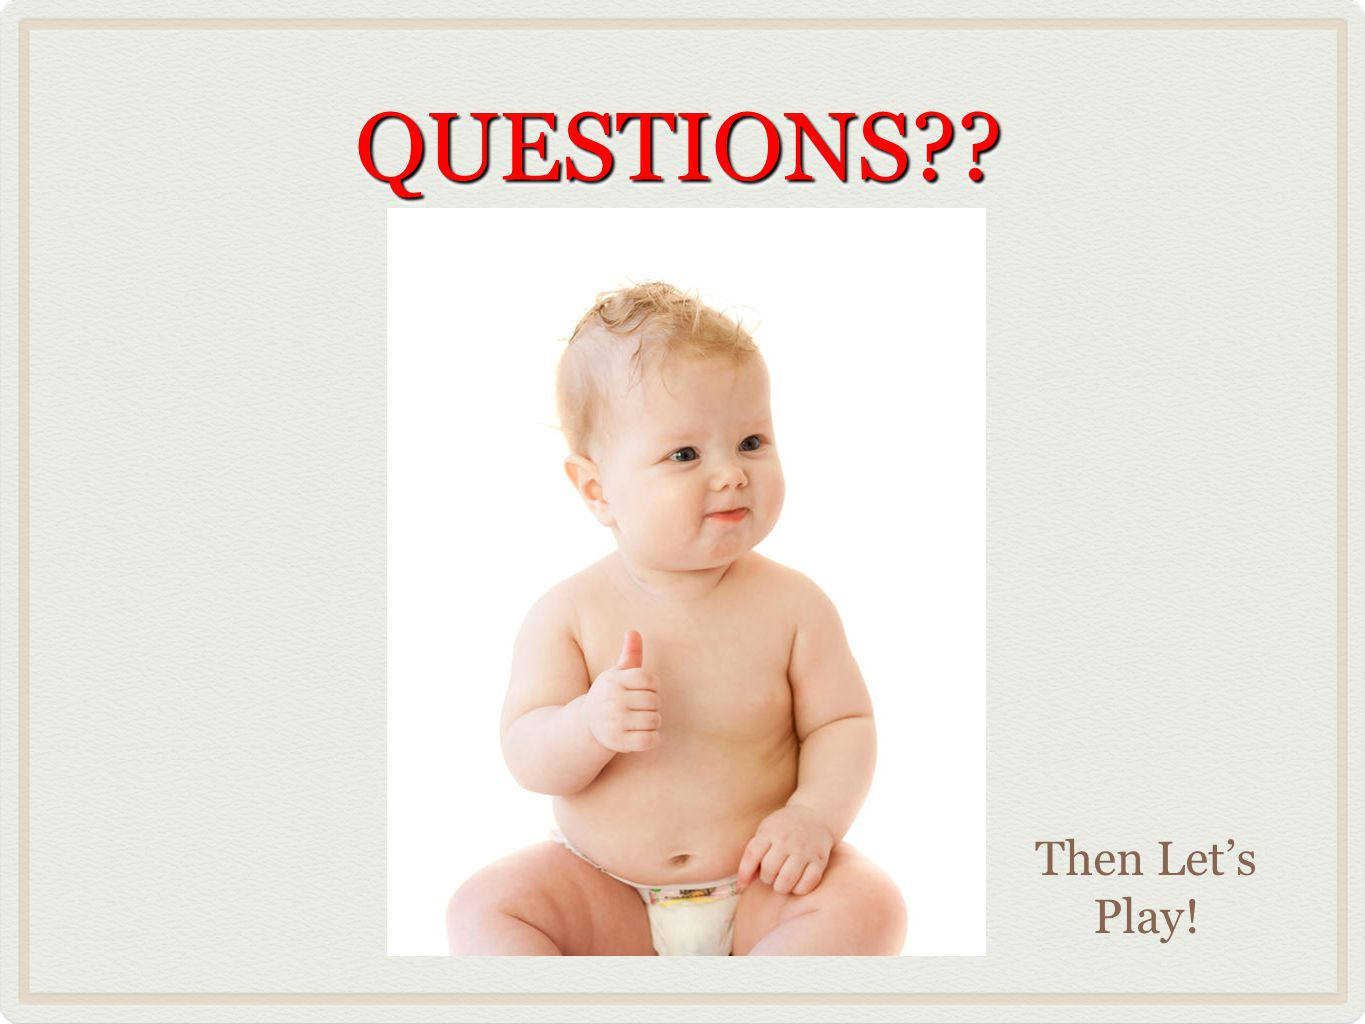 QUESTIONS??QUESTIONS?? Then Let's Play!